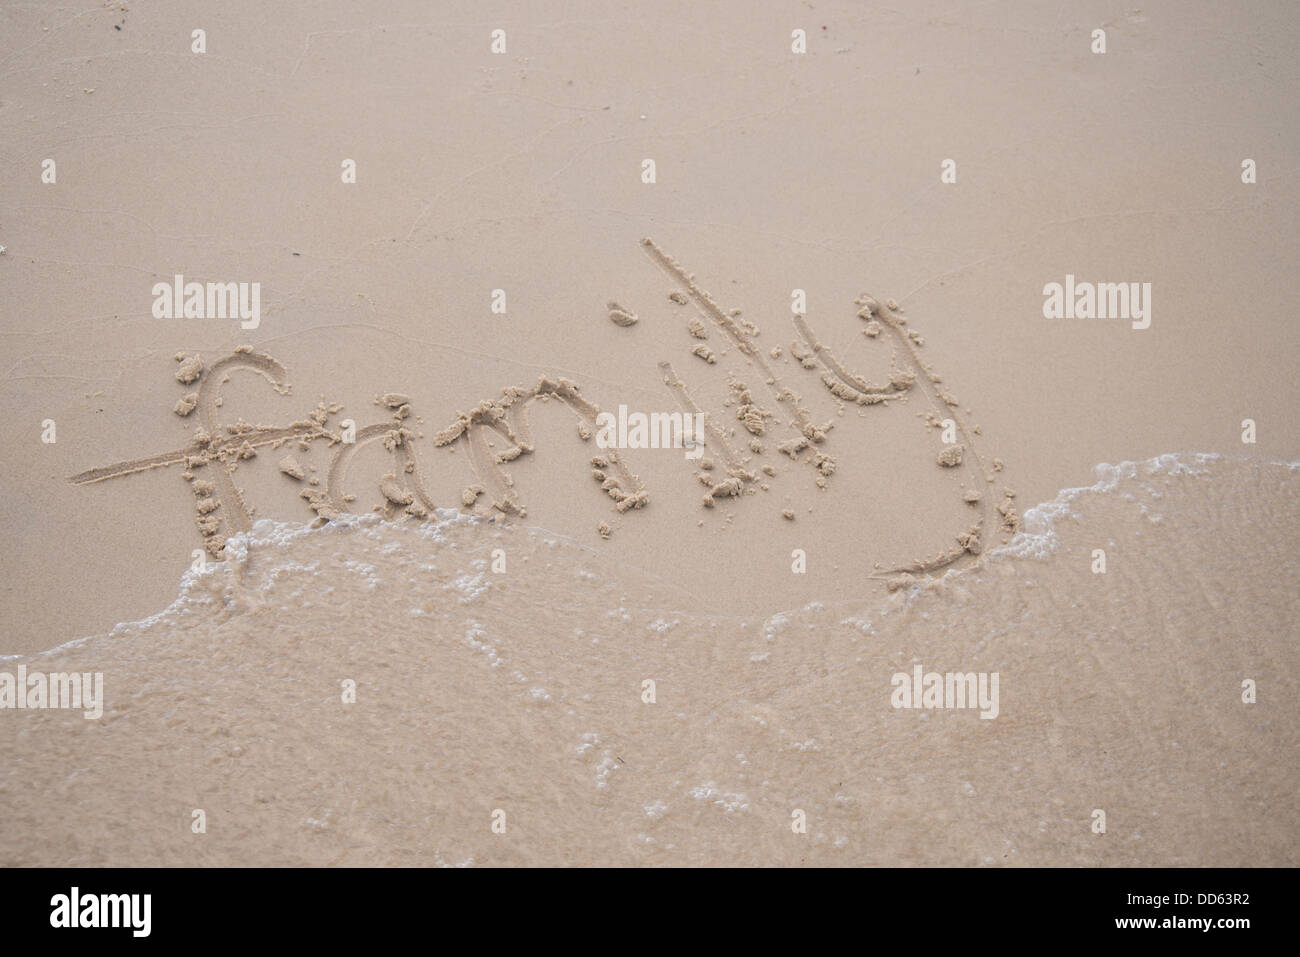 The word 'family' written in the sand, being washed away by a wave. - Stock Image